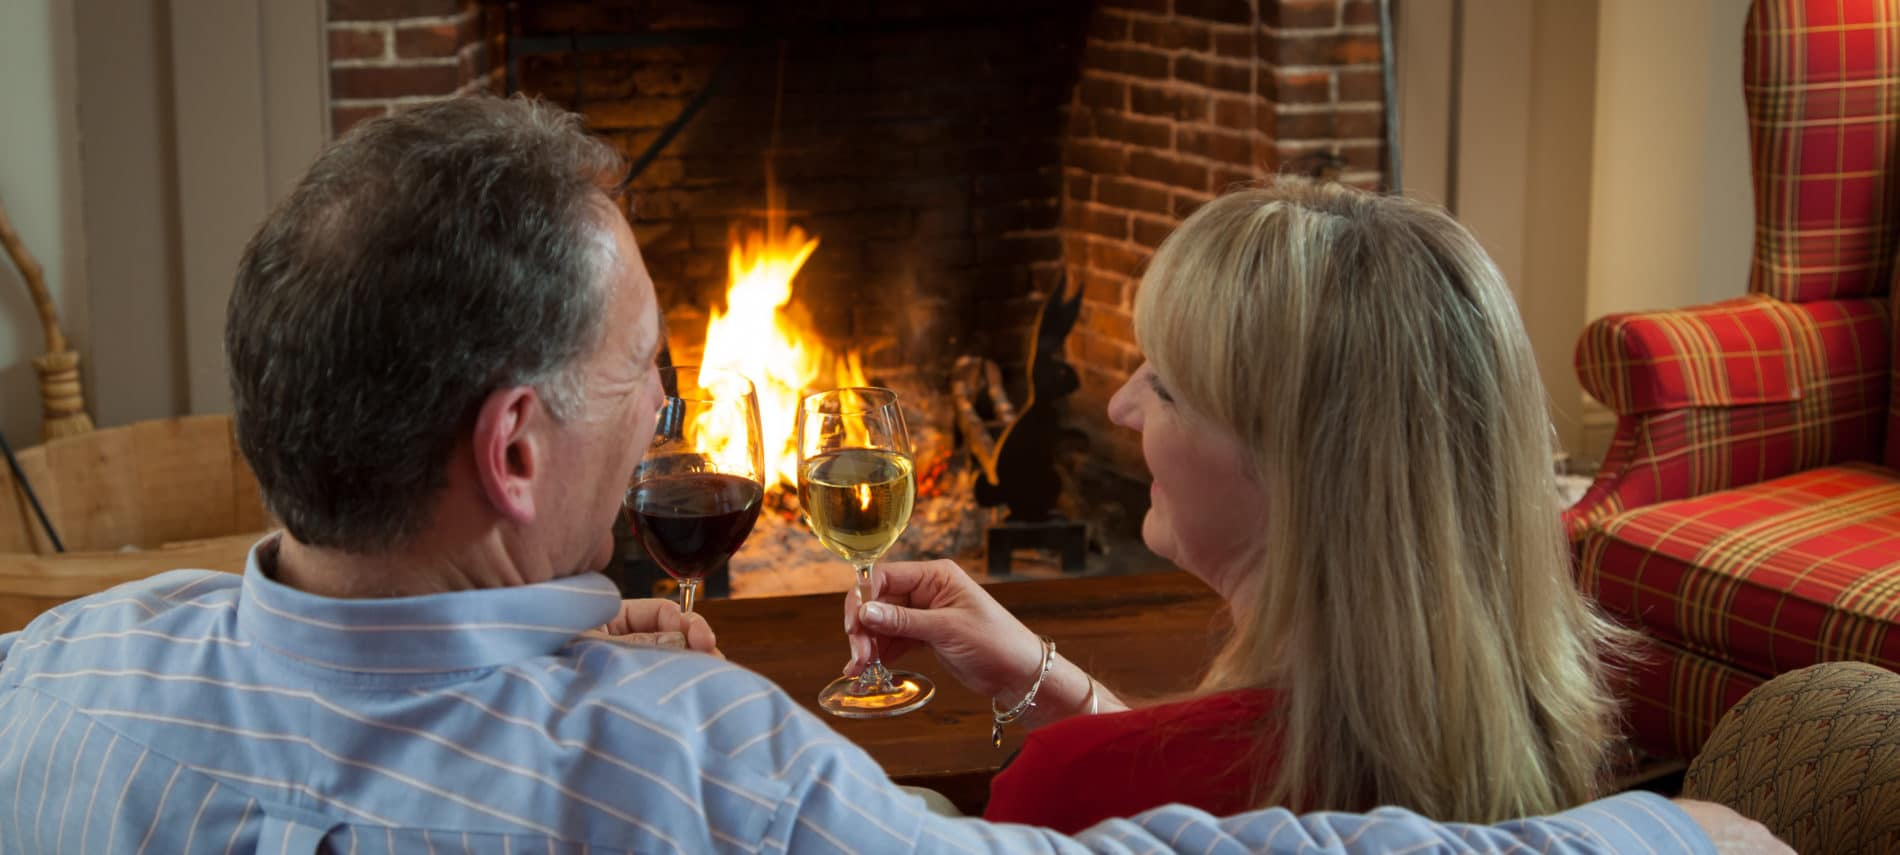 Couple toasting each other with wine in front of a fireplace